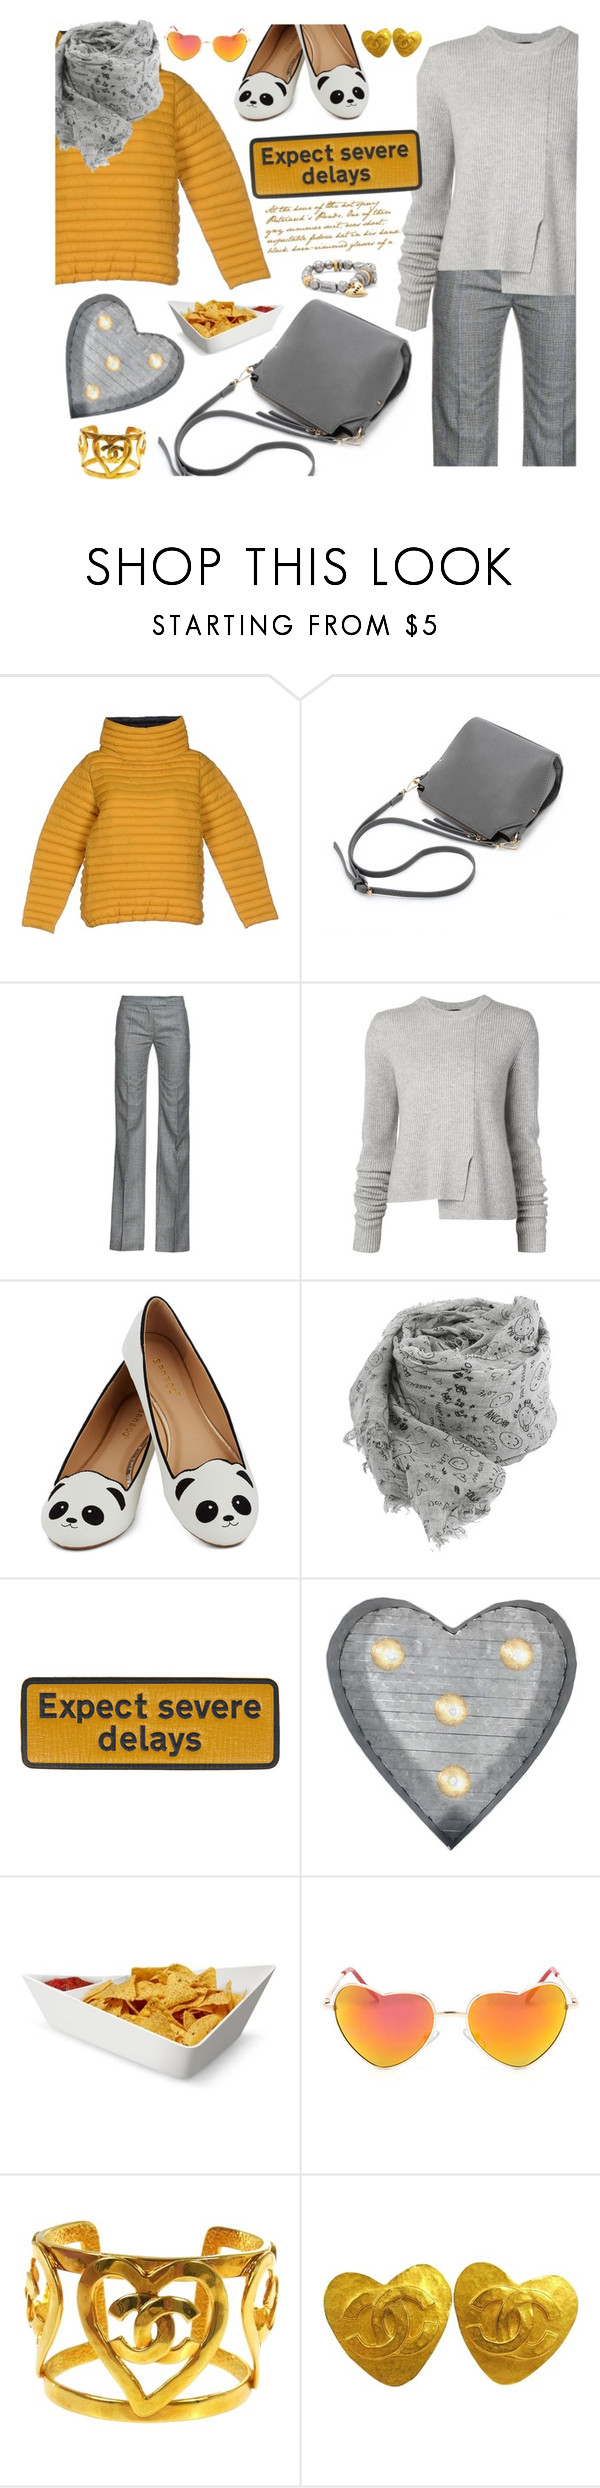 """Expect severe delays"" by soofiia ❤ liked on Polyvore featuring DOUUOD, Antonio Berardi, Proenza Schouler, Faliero Sarti, Anya Hindmarch, Crystal Art, Black+Blum, Chanel, Chico's and women's clothing"